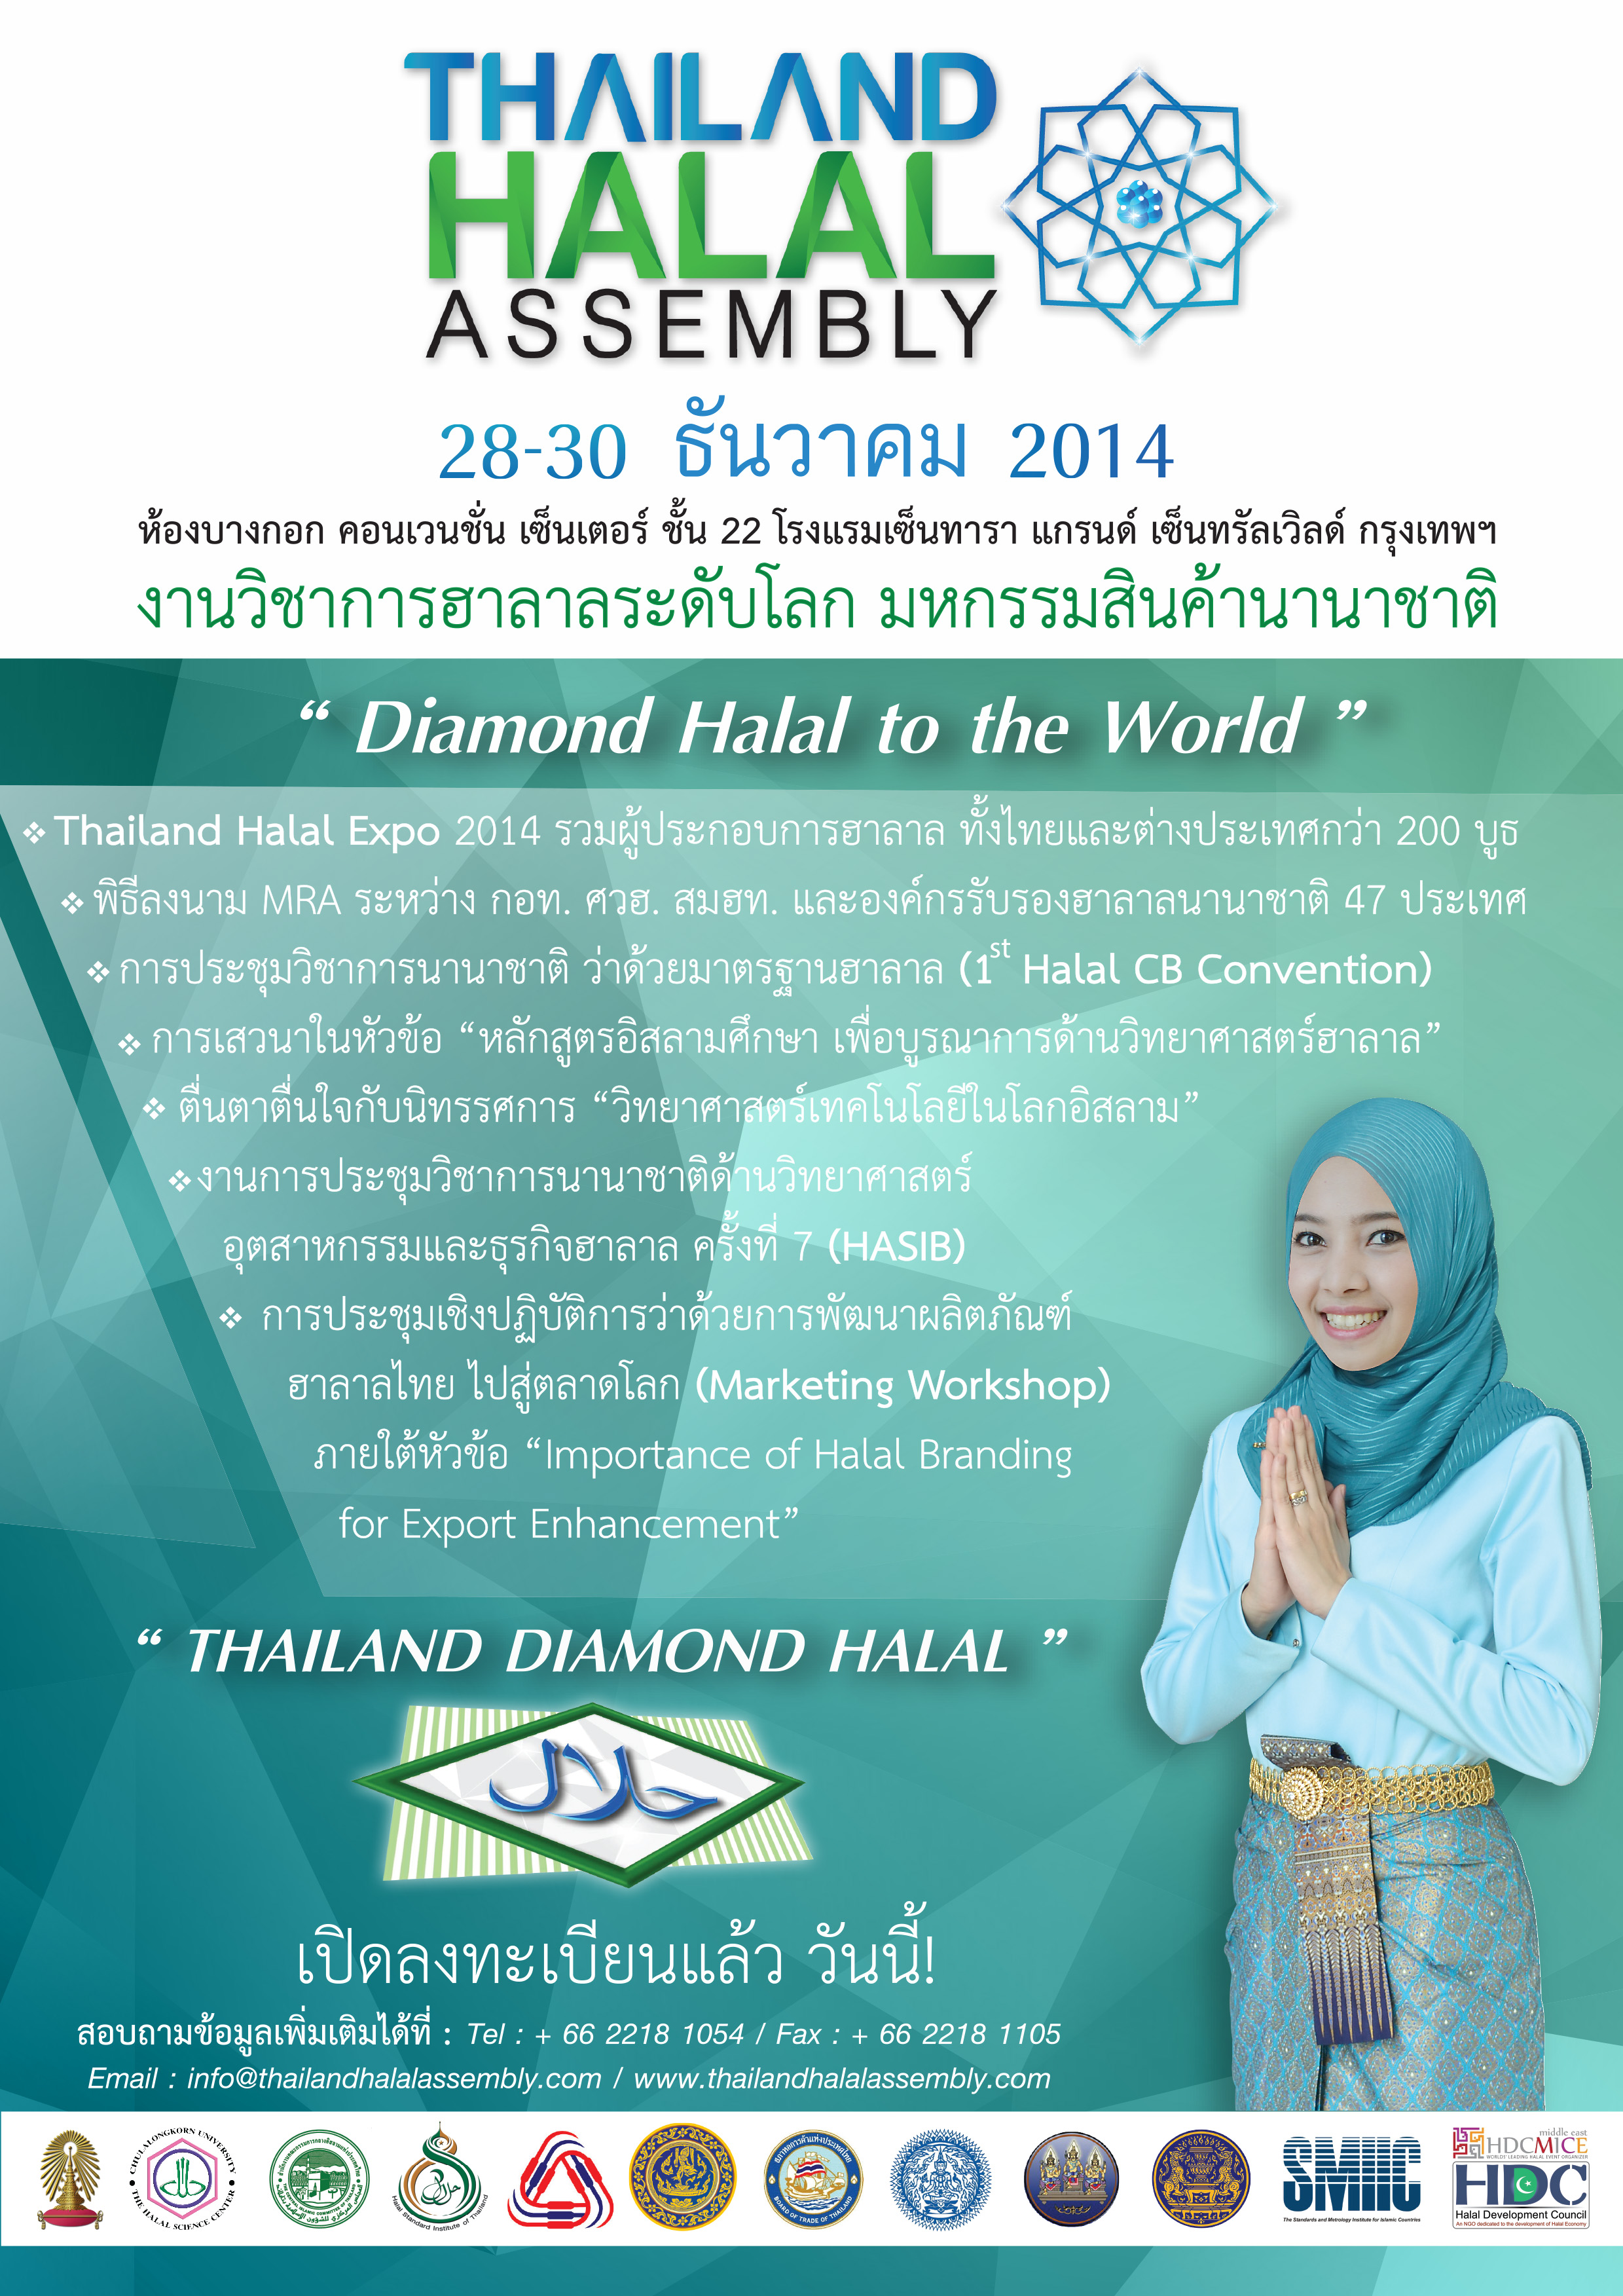 Thailand Halal Assembly 2014